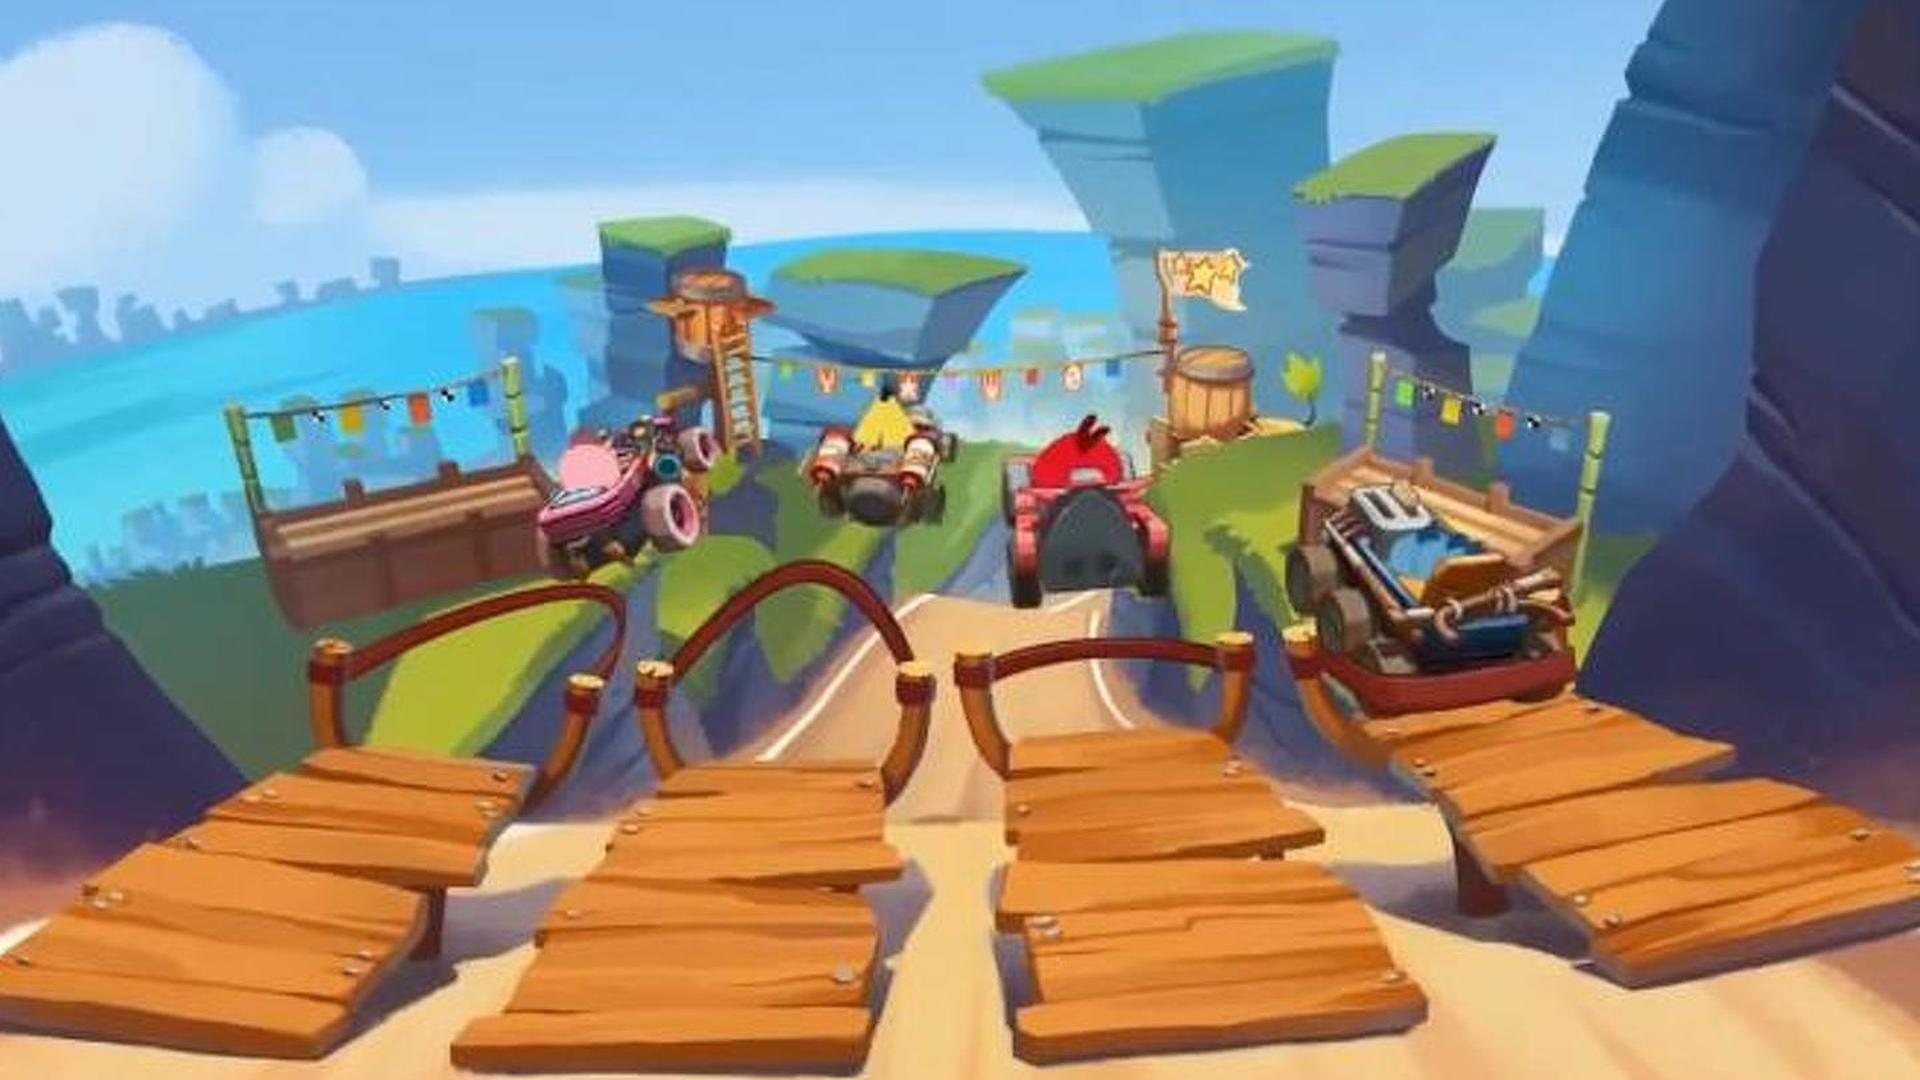 Angry Birds Go! racing gameplay trailer released [video]